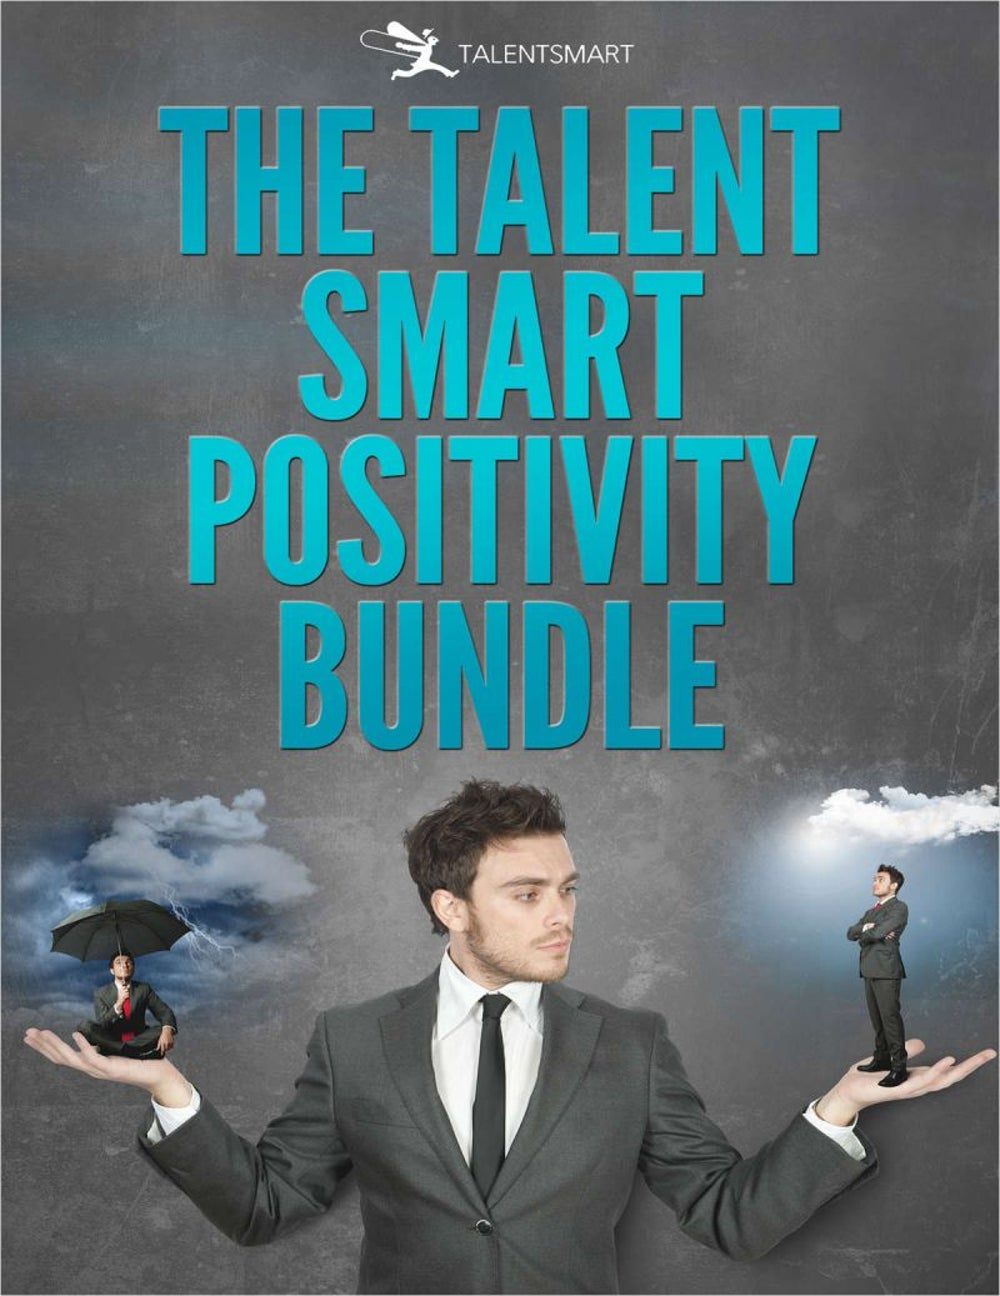 Stay Positive! How to Avoid Negativity and Lead a Happier Life